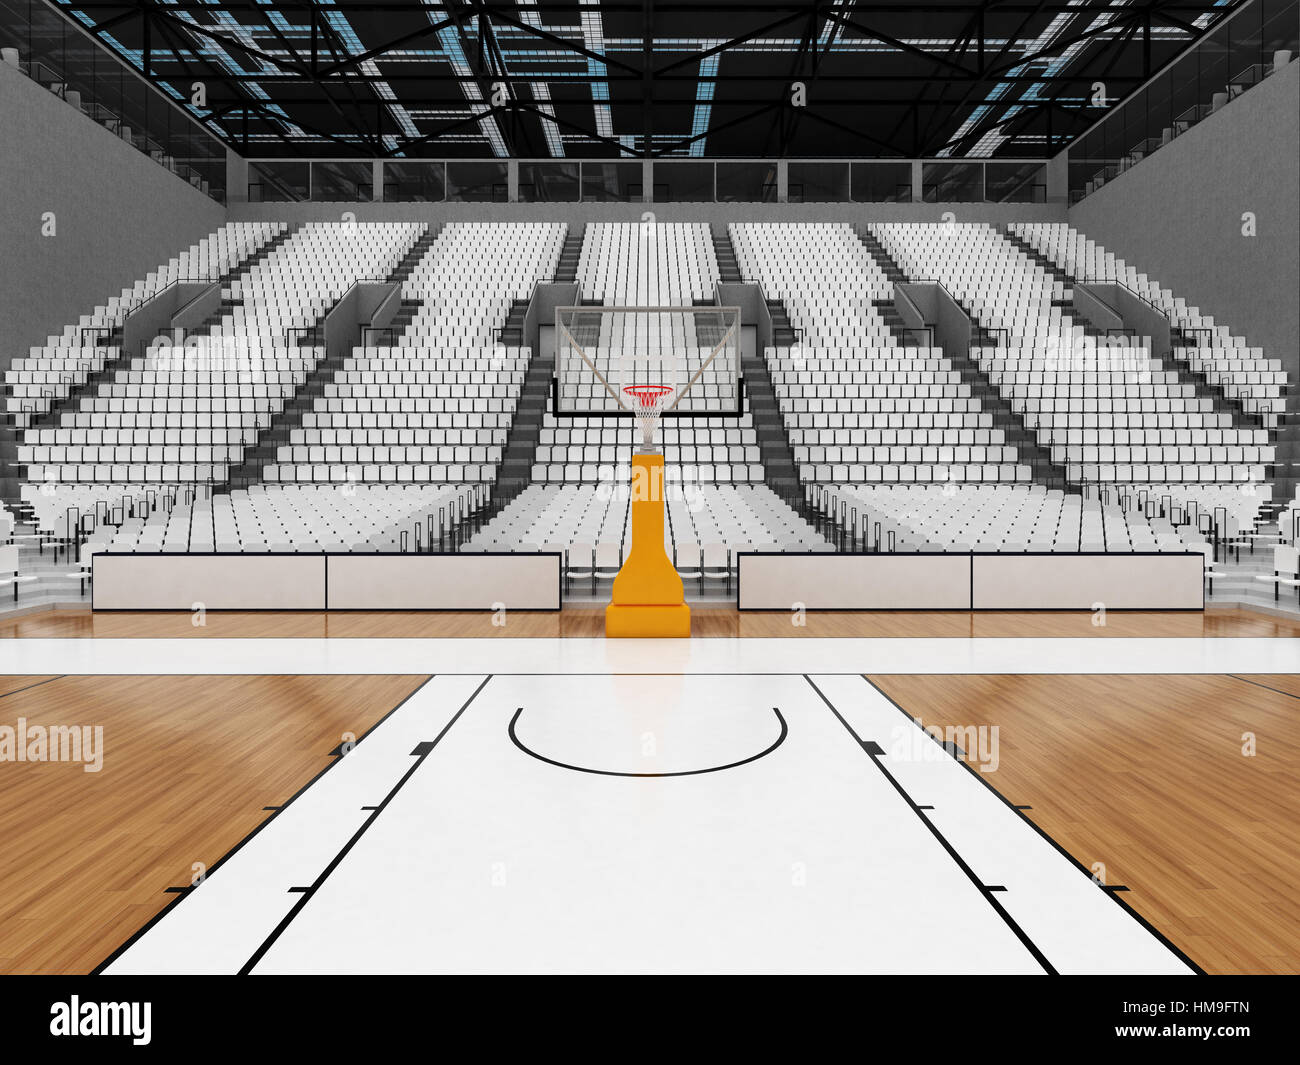 3d Render Of Beautiful Sports Arena For Basketball With Floodlights Stock Photo 132975717 Alamy